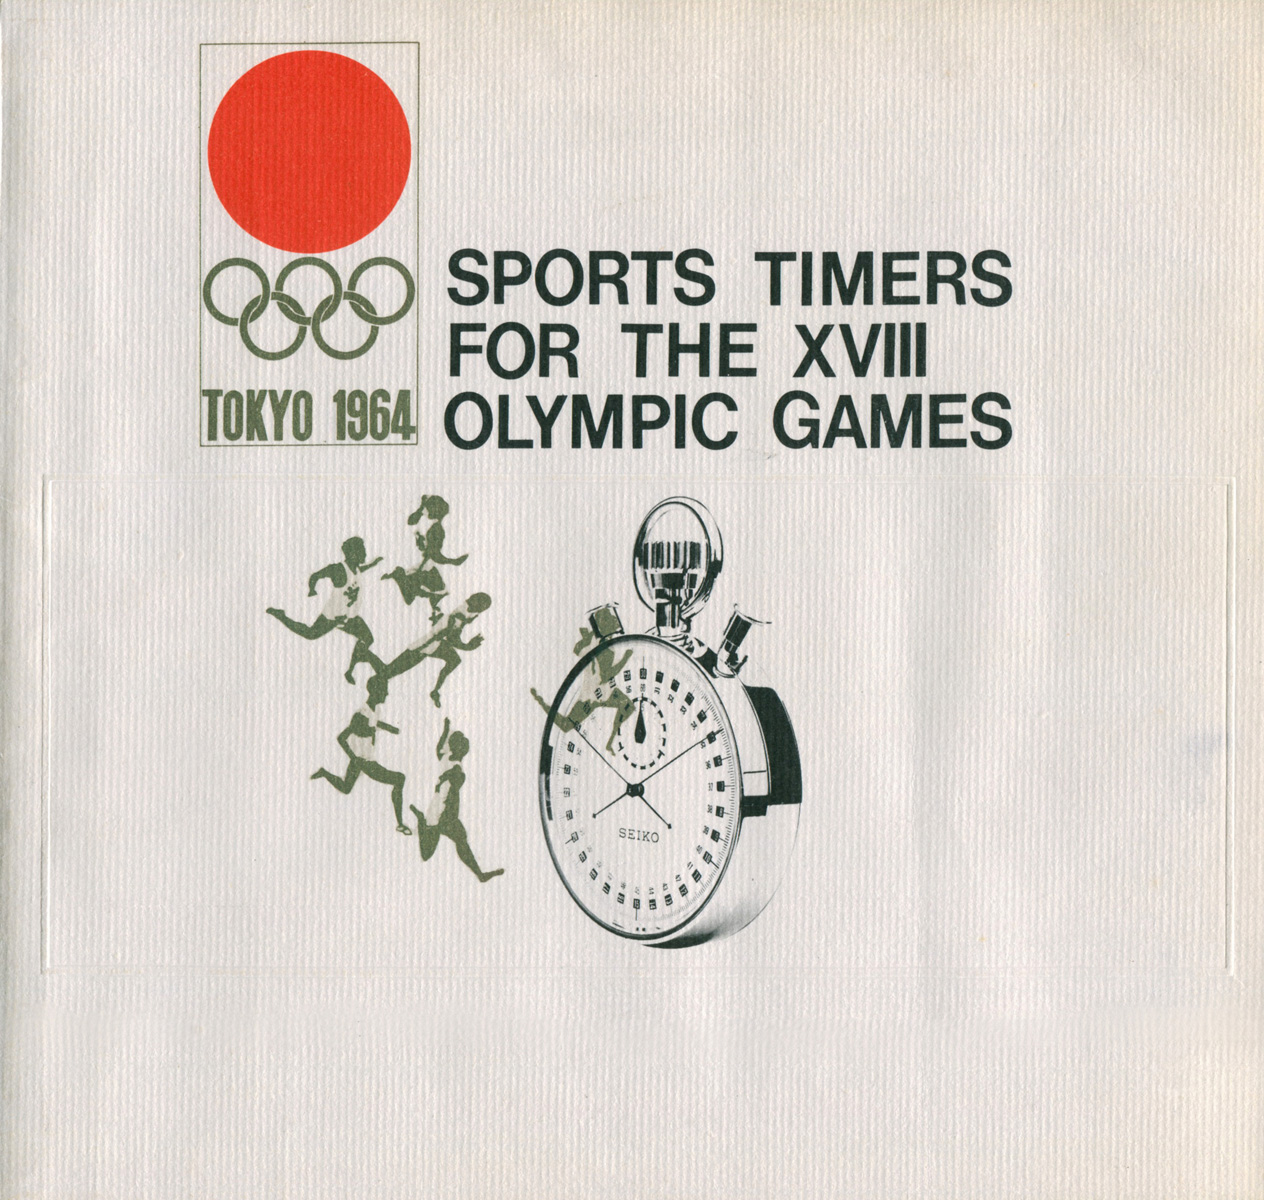 Olympic Sports Timers Cover